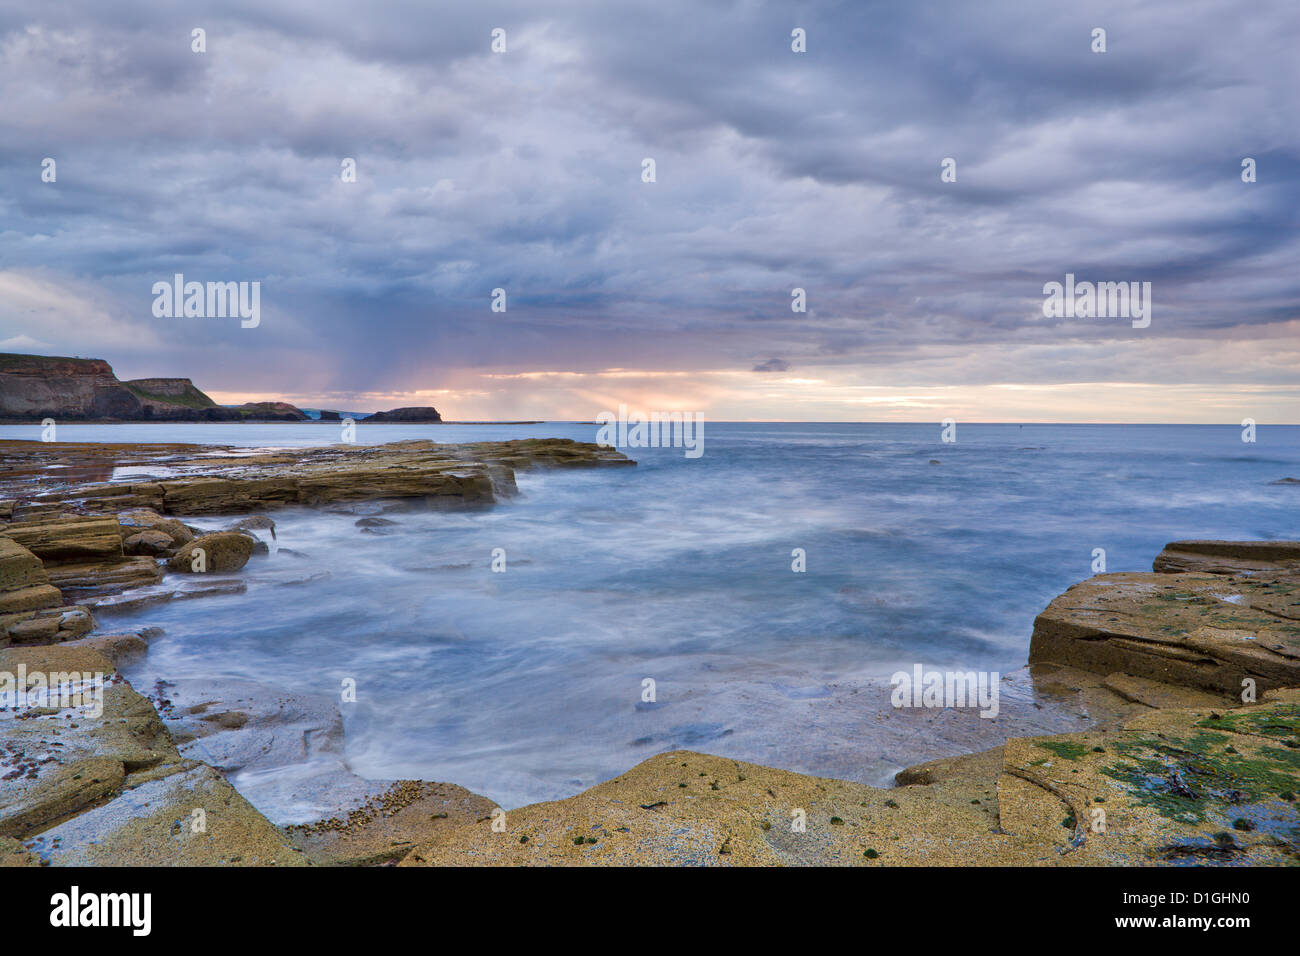 A showery evening at low tide in Saltwick Bay, North Yorkshire, Yorkshire, England, United Kingdom, Europe Stock Photo